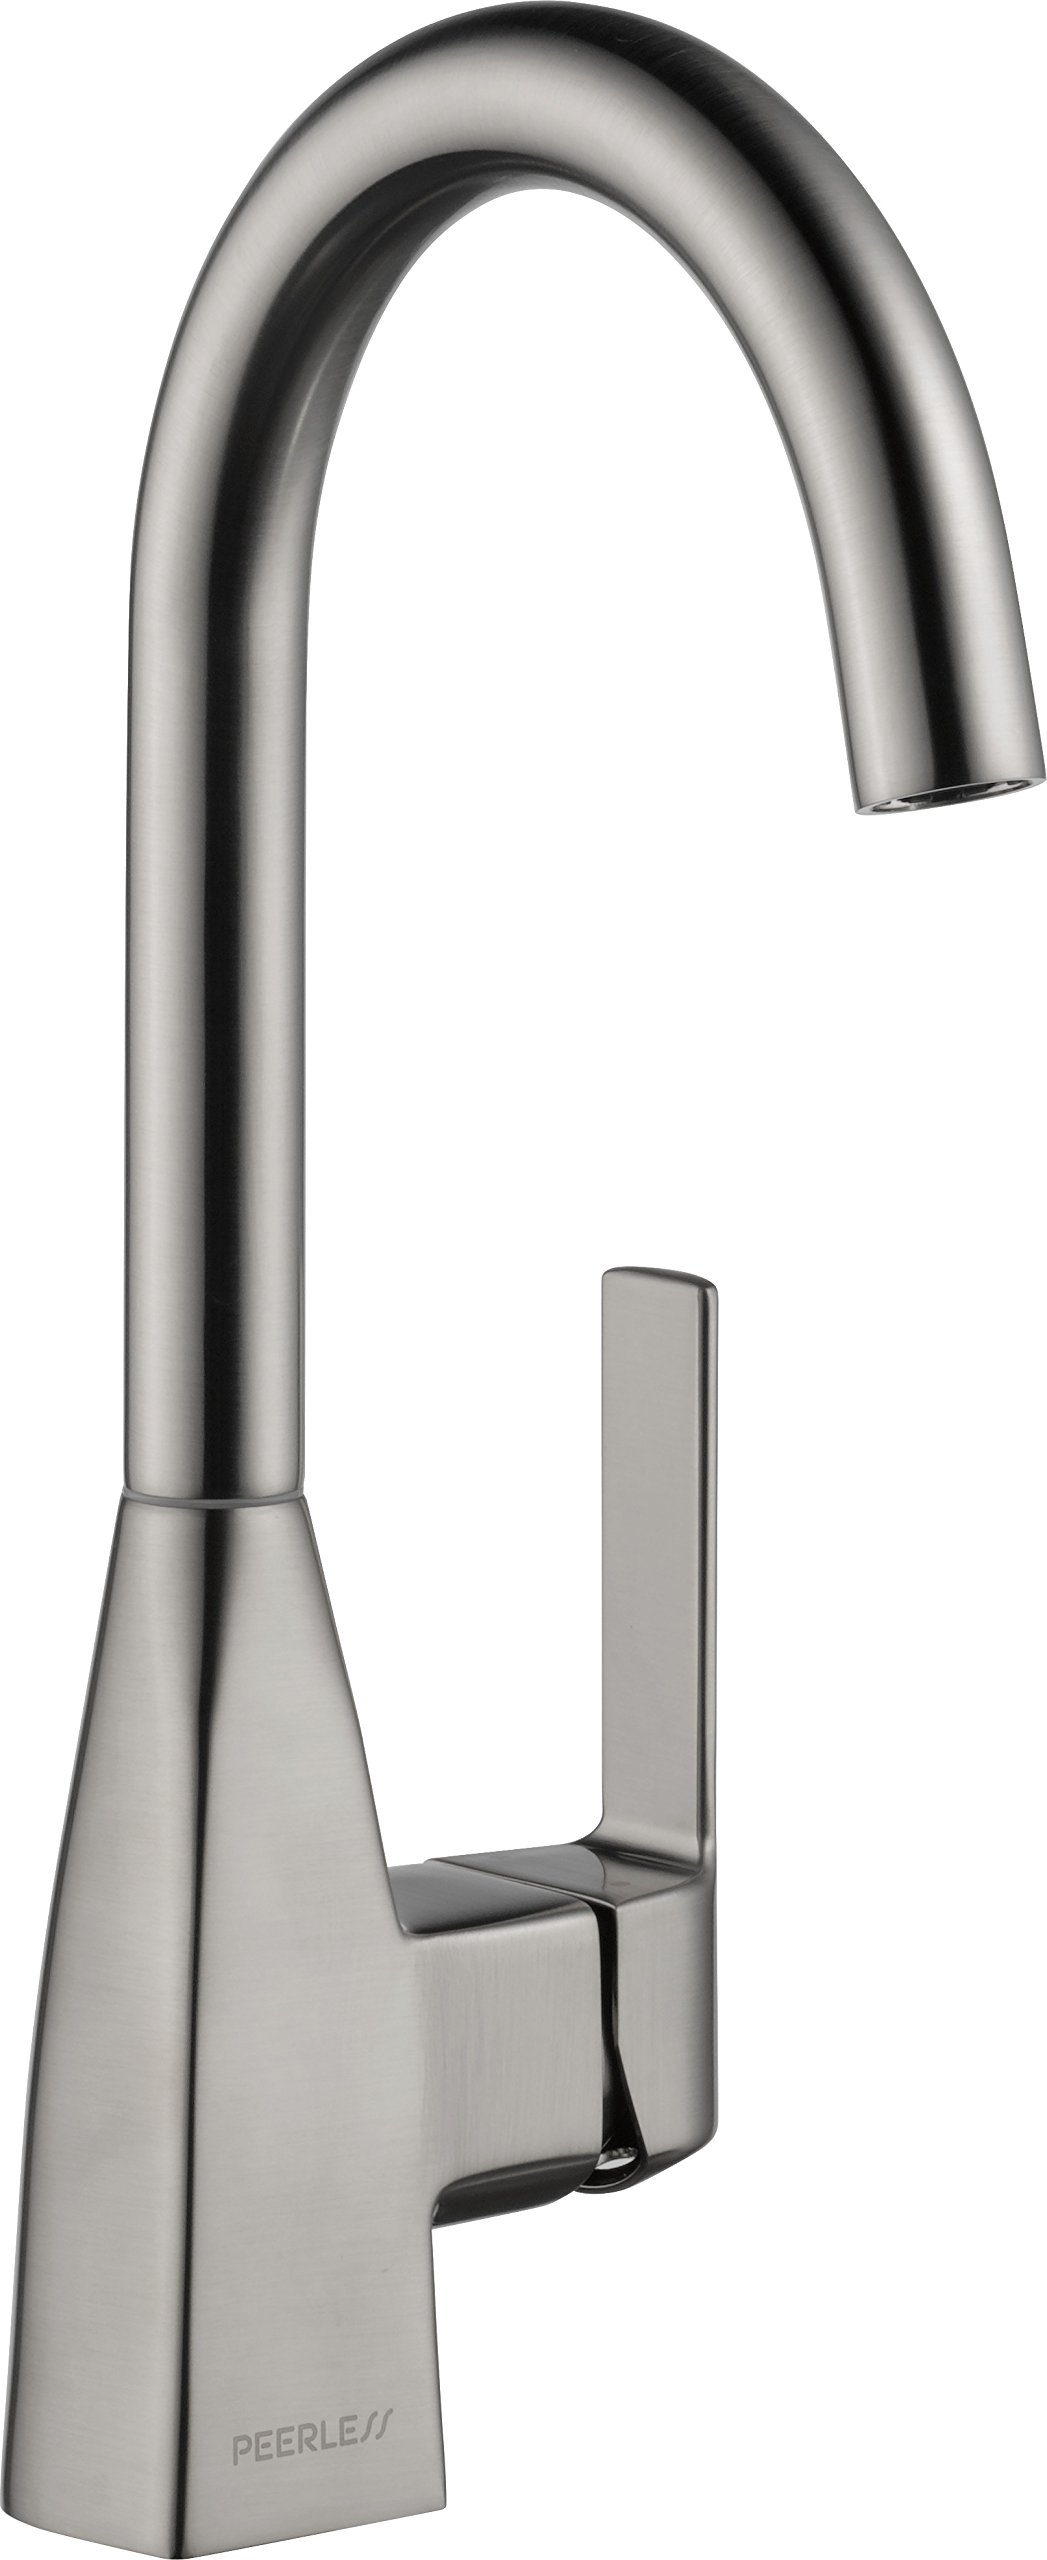 Peerless Xander Single-Handle Bar-Prep Kitchen Sink Faucet, Stainless P1819LF-SS